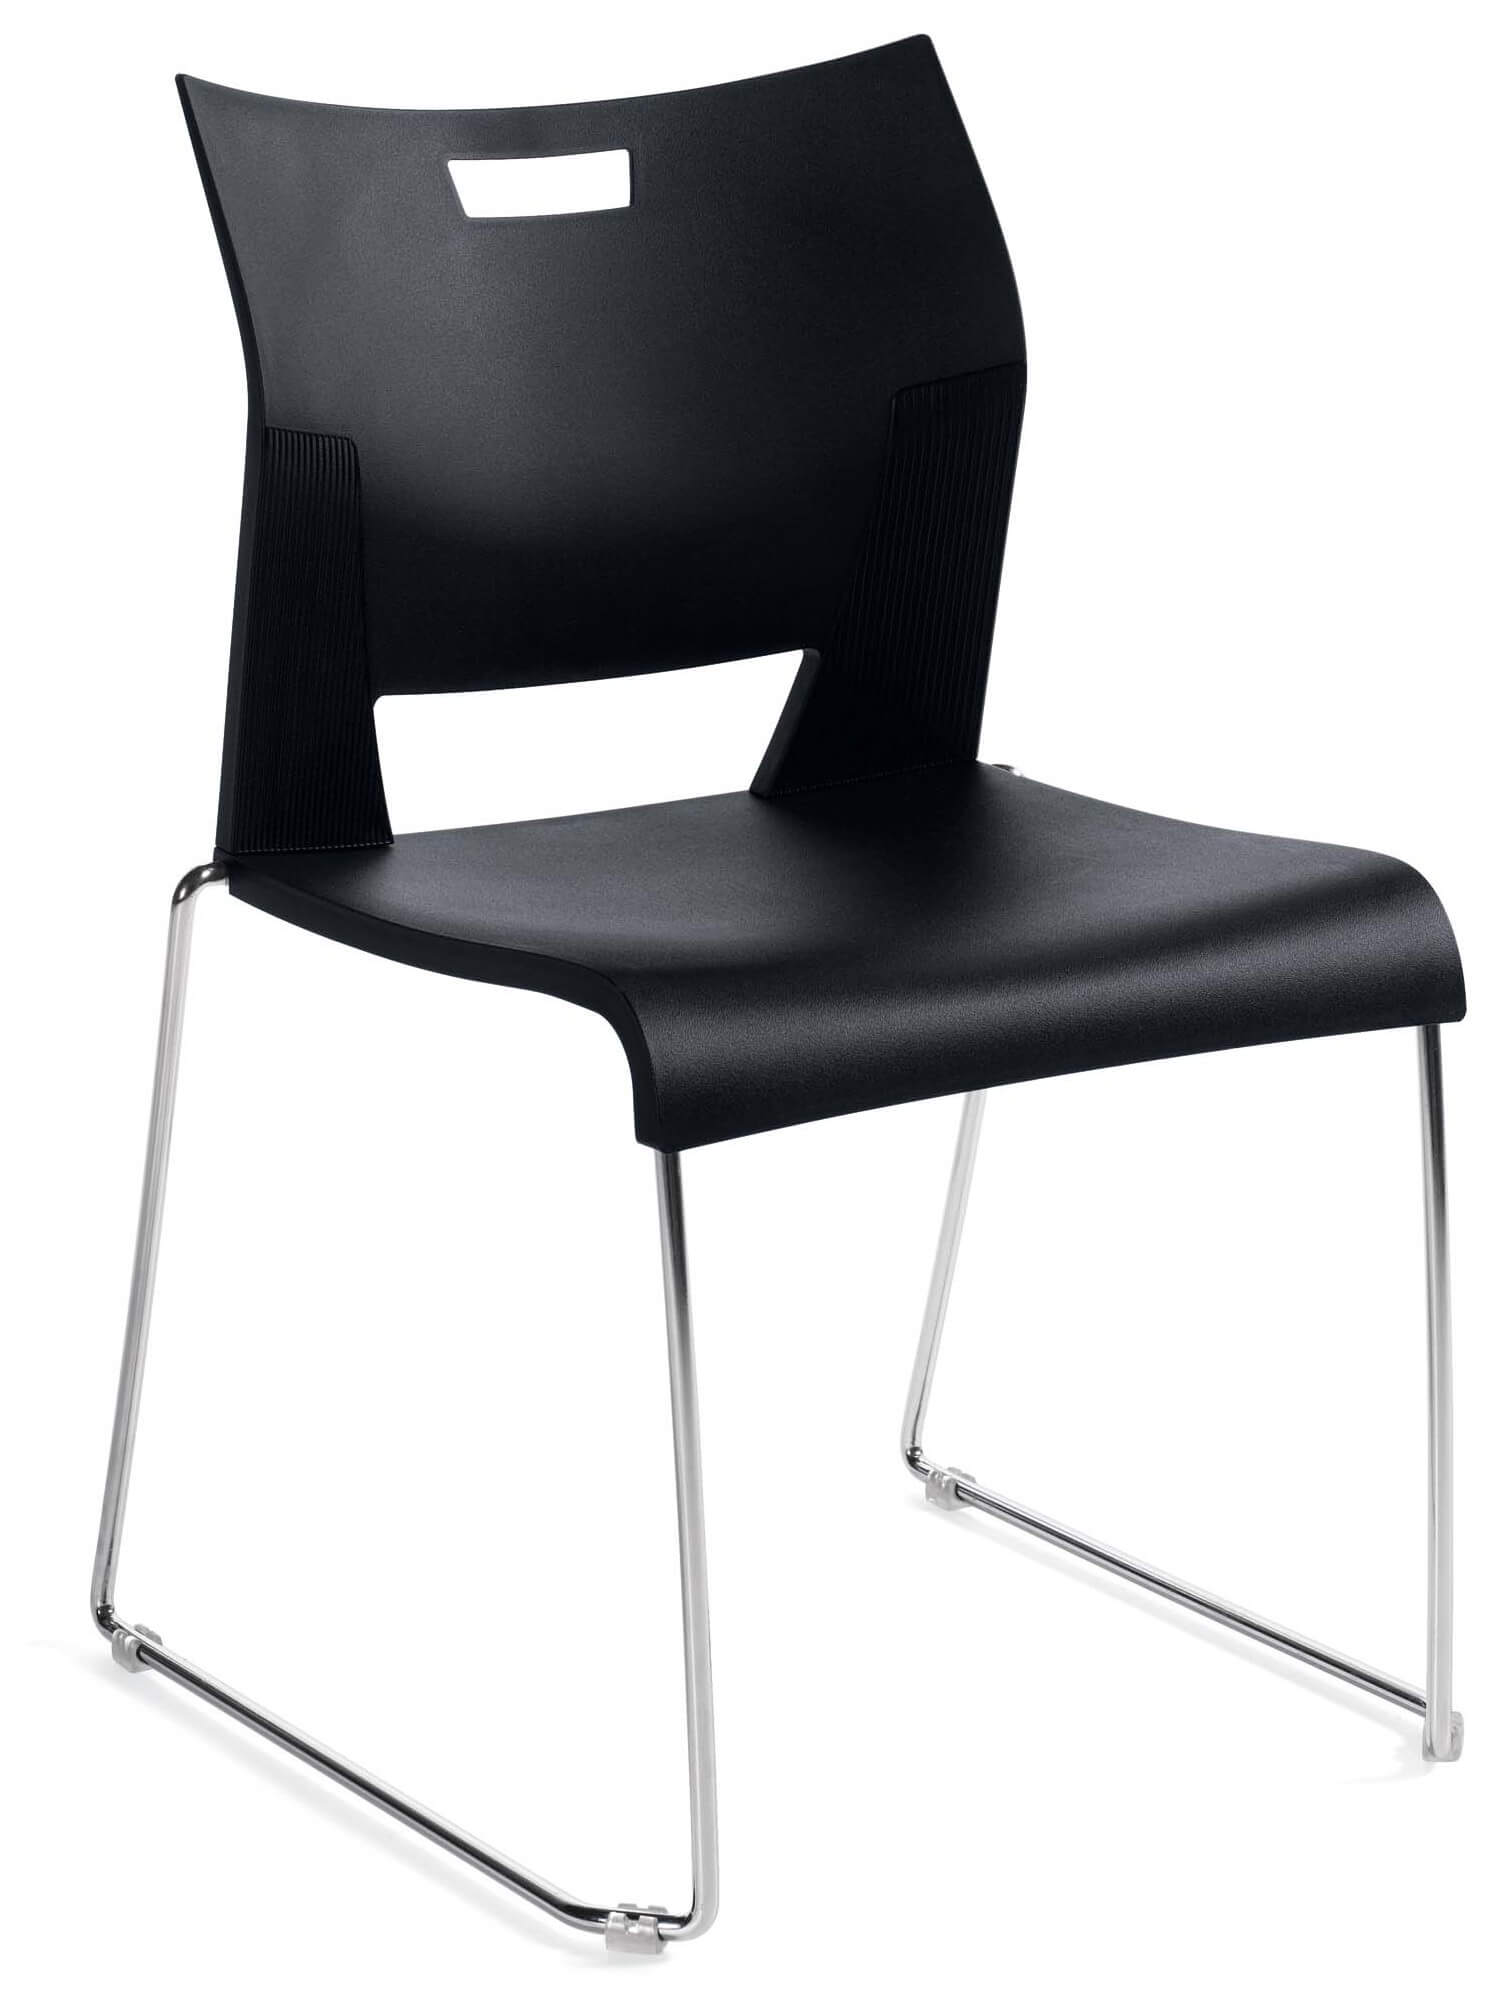 chairs-for-office-armless-office-chair.jpg